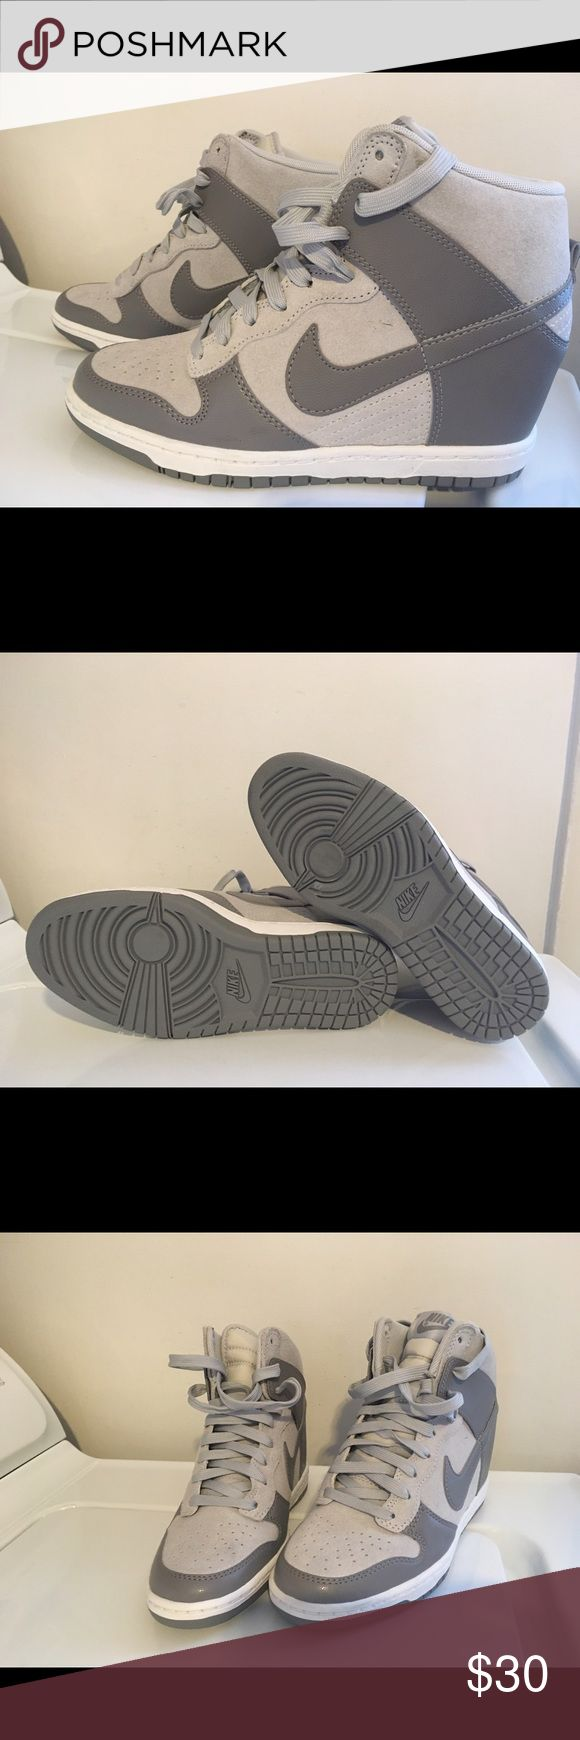 Women's Nike wedge tennis shoes NWOT.  Never worn.  Have been packed away and do not fit me. Nike Shoes Athletic Shoes